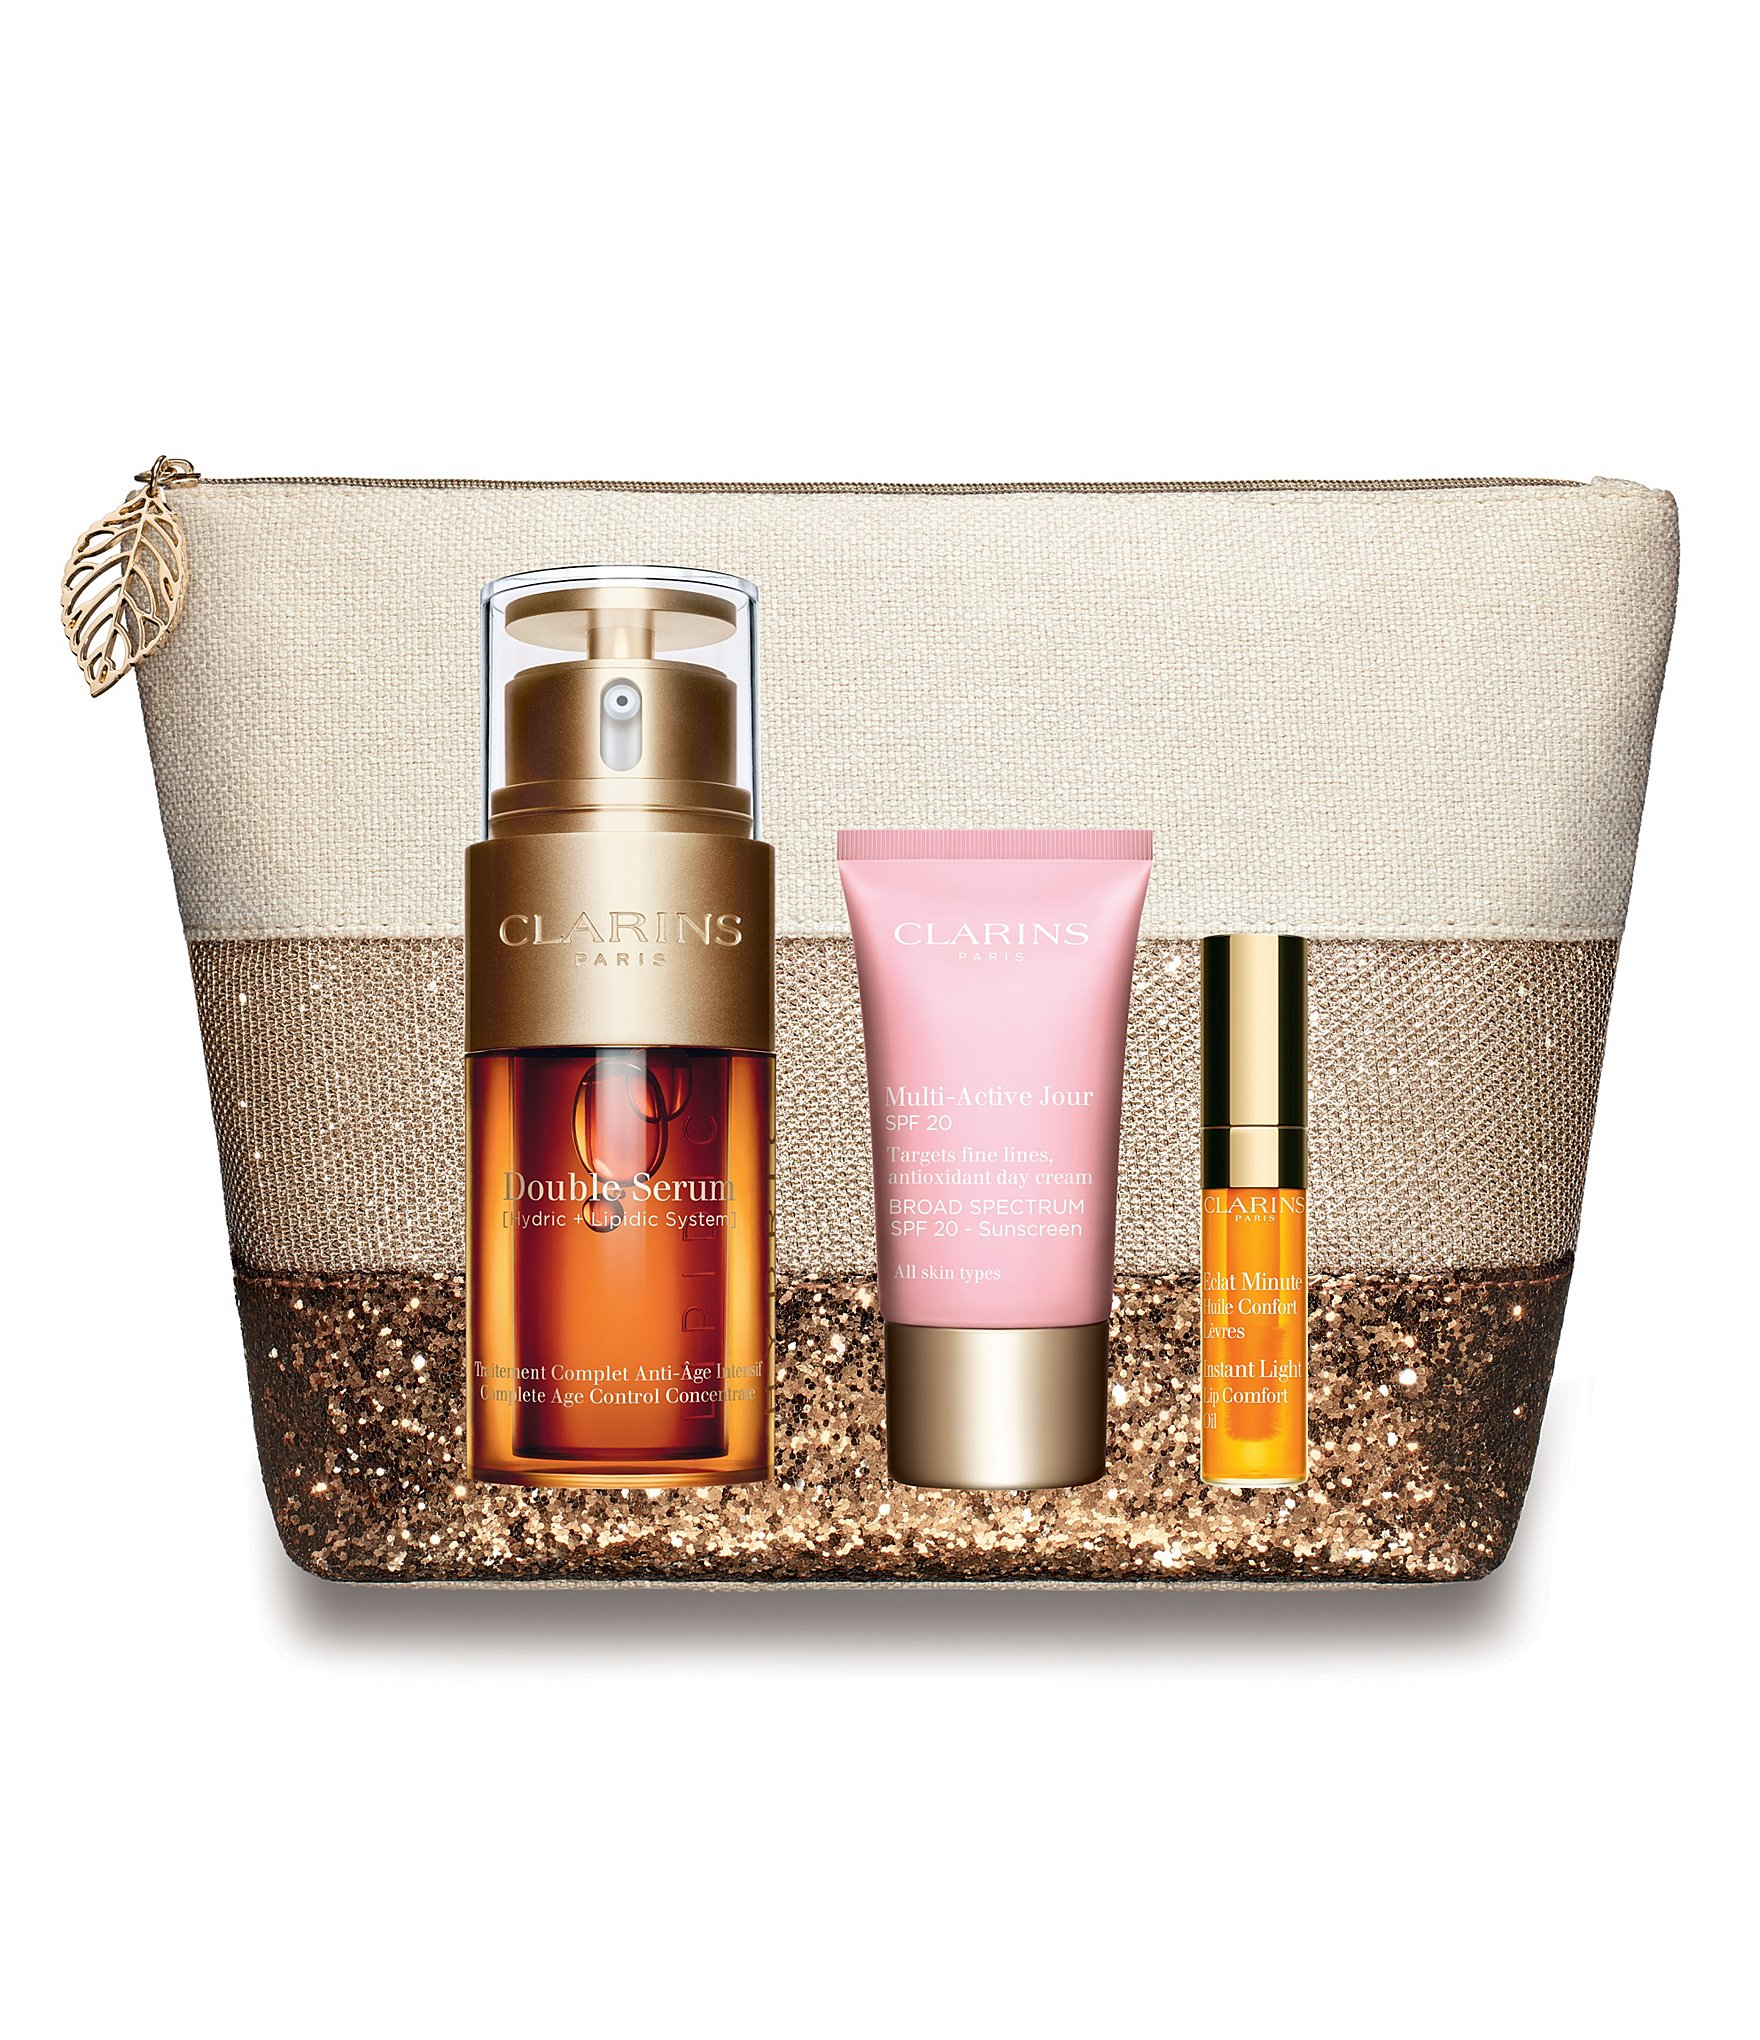 clarins multi active double serum set dillards. Black Bedroom Furniture Sets. Home Design Ideas